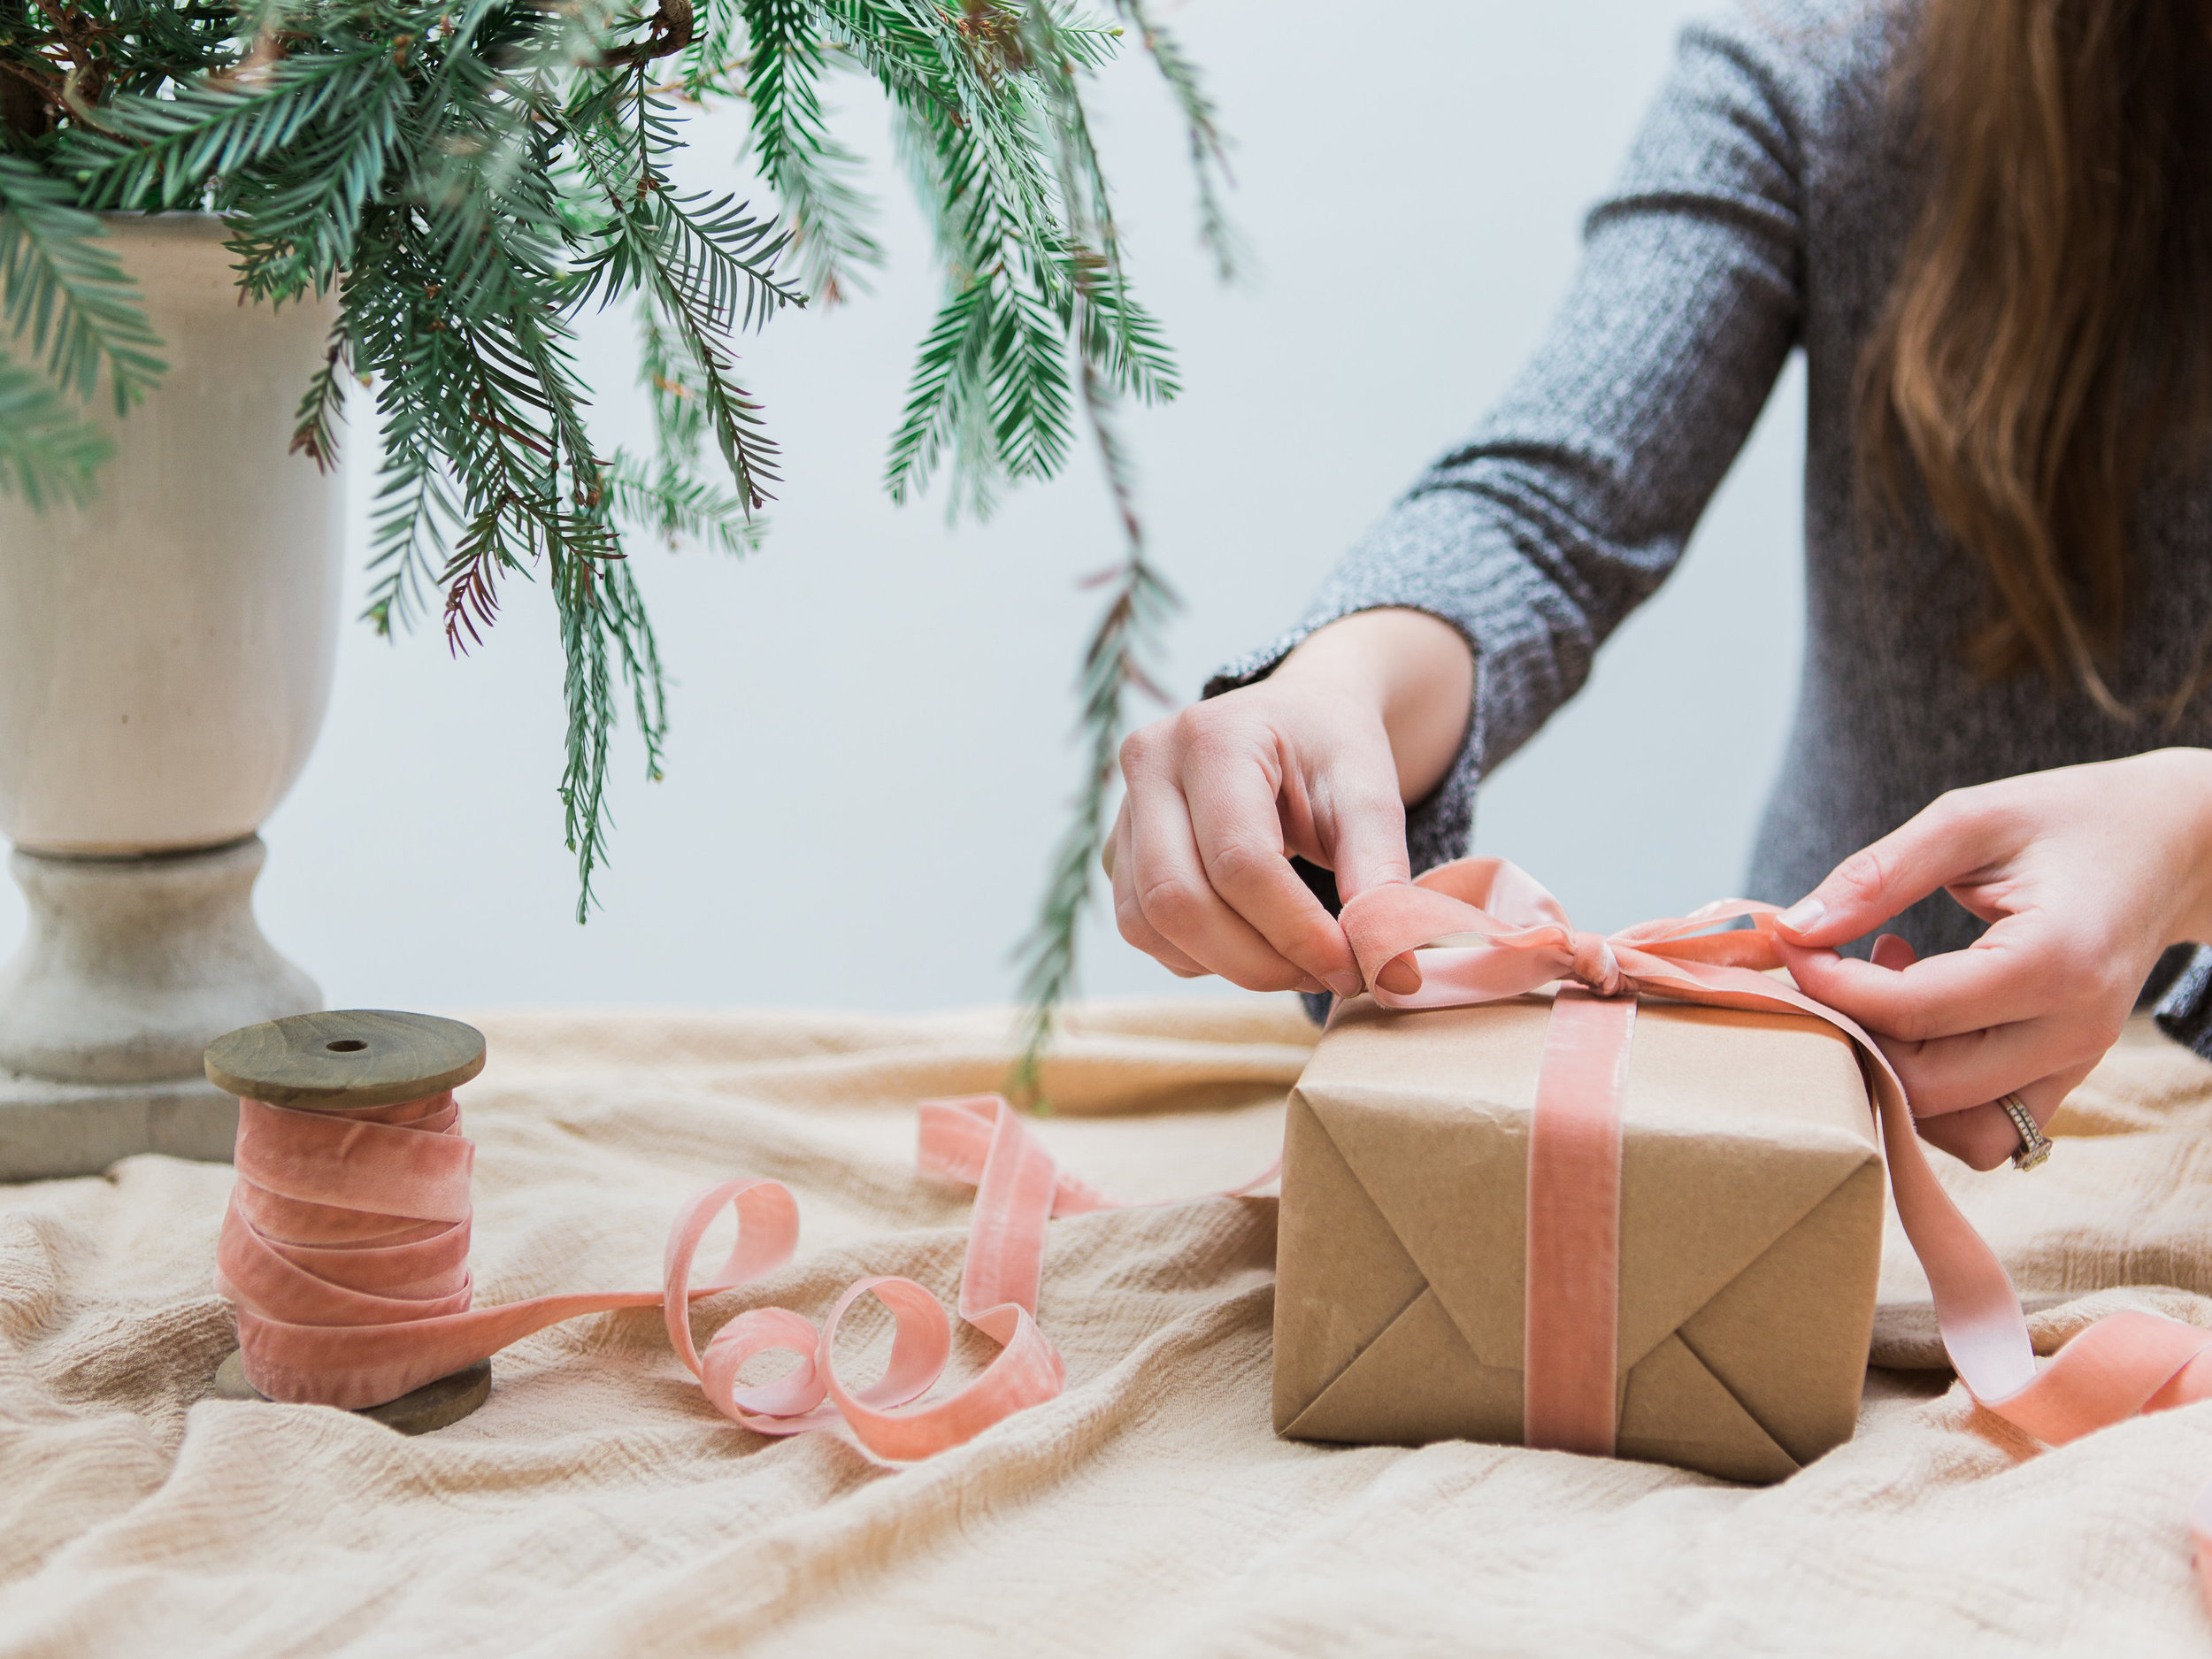 holiday gift wrapping ideas using alternative colors